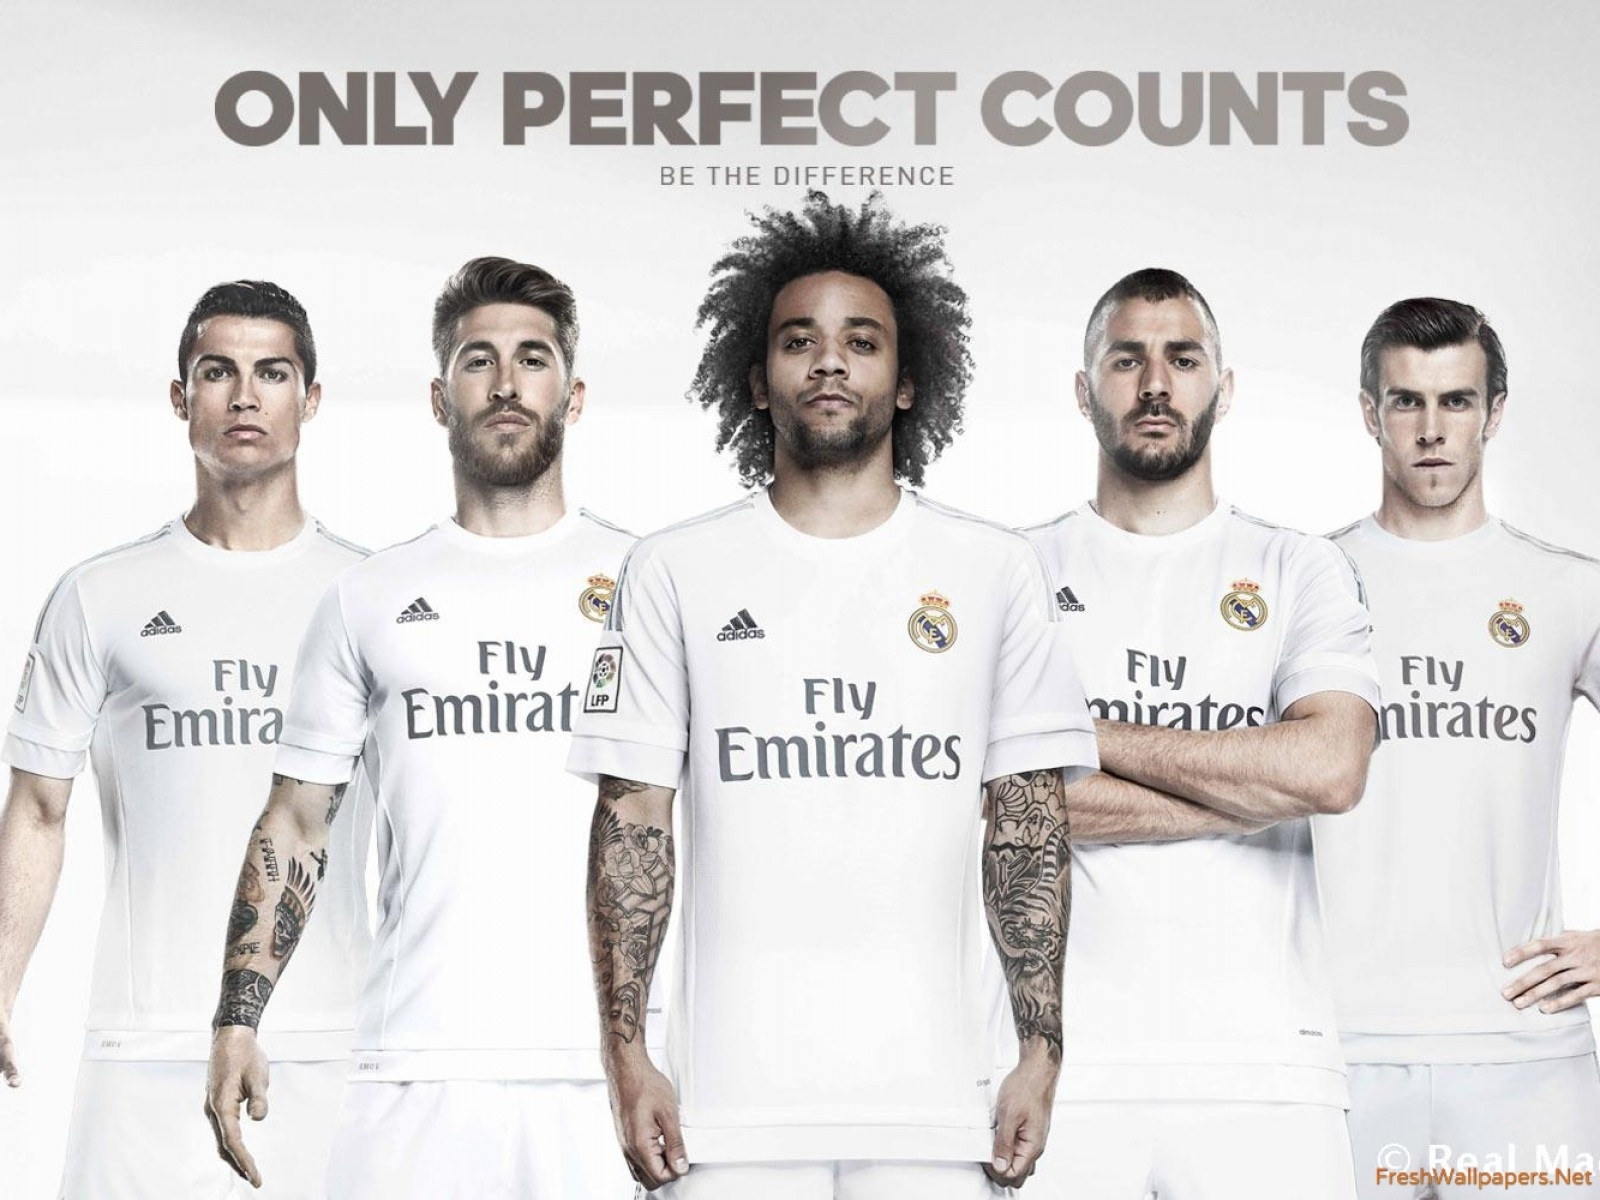 real madrid cf 2015-2016 kit wallpapers | freshwallpapers